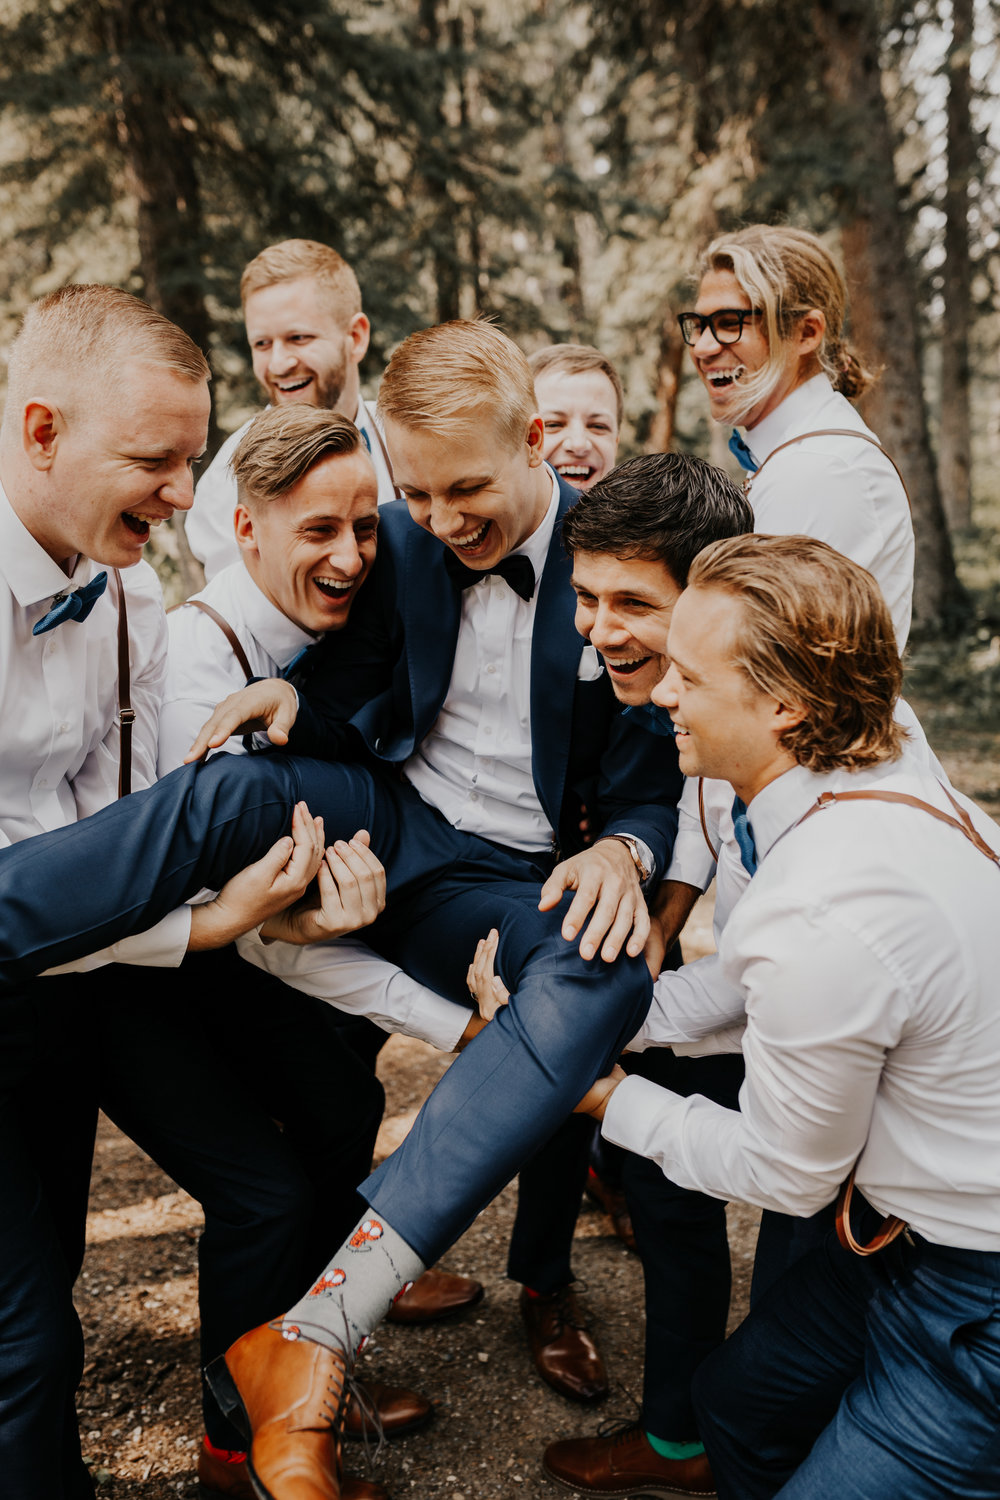 Groomsmen Wedding Photos l Banff Wedding l Calgary Wedding l Oregon Wedding Photographer l Katy Rose Photo-34.jpg